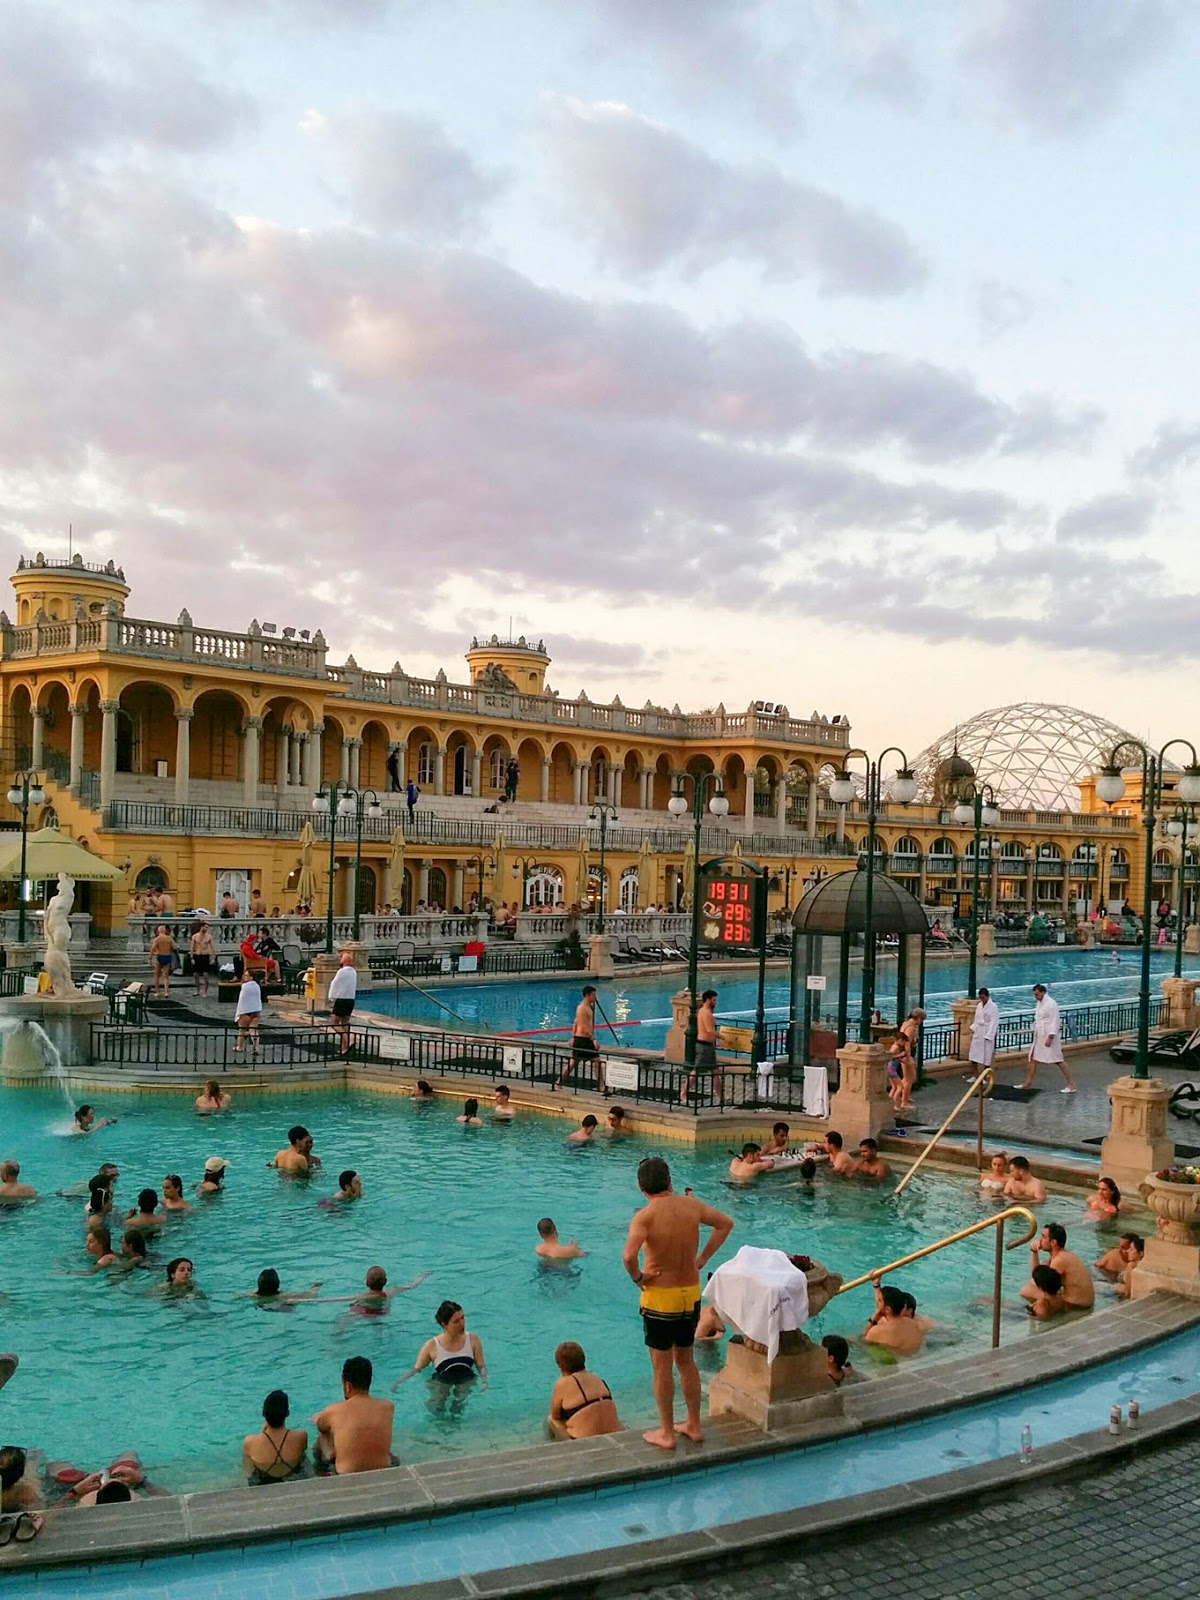 sunset budapest guide itinerary instagram worthy spot sights landmarks hungary szechenyi thermal baths